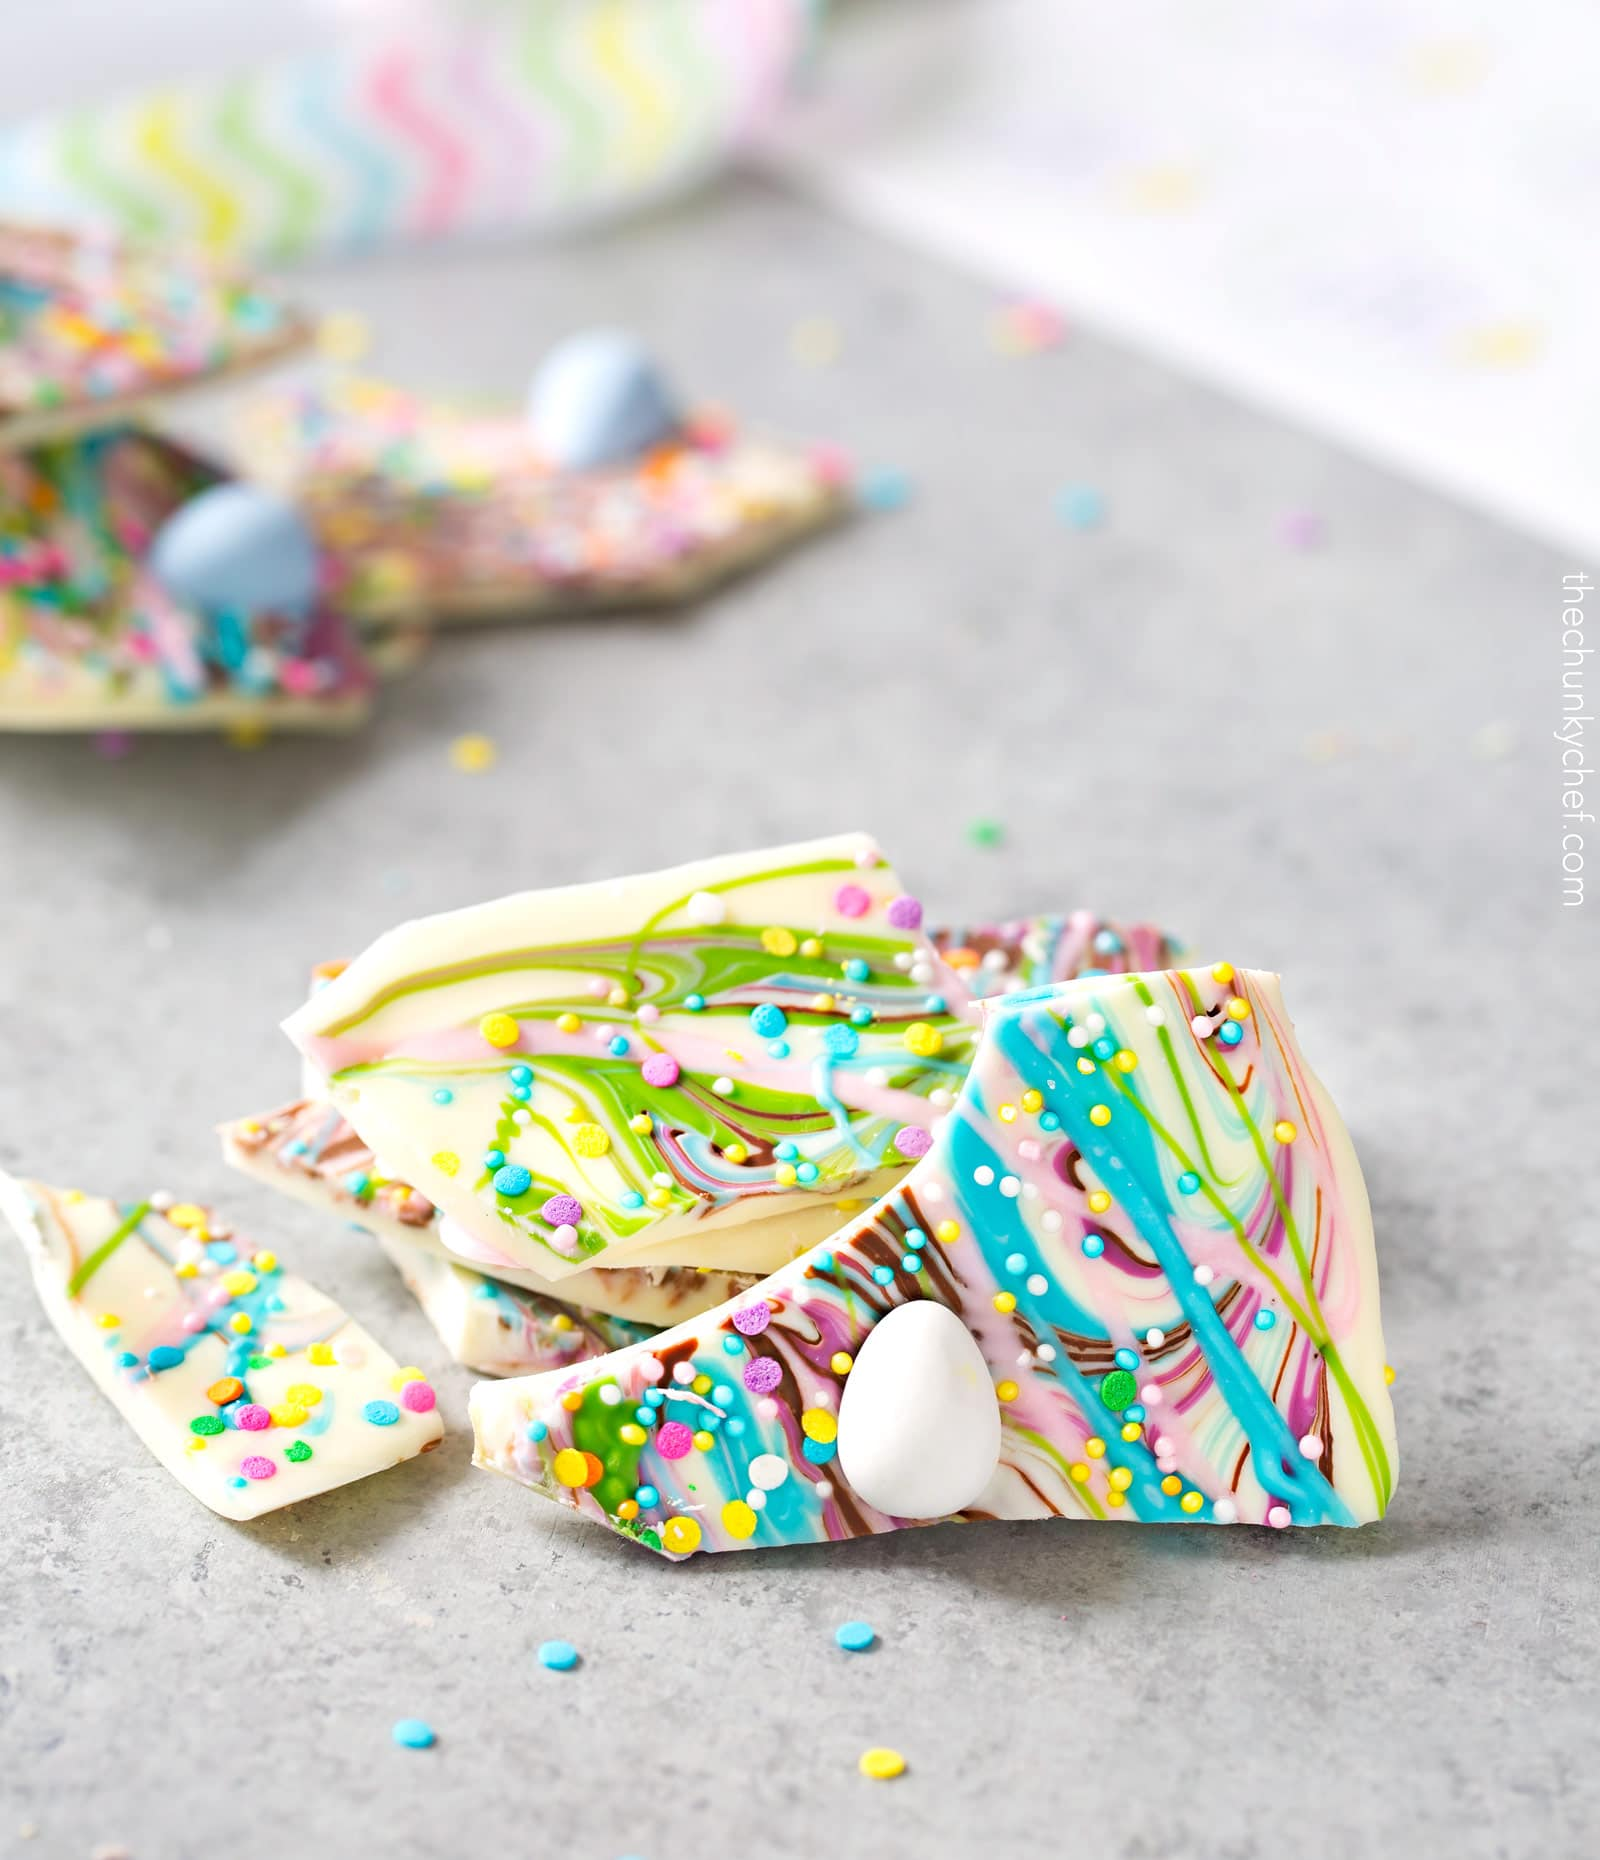 Brownie Batter White Chocolate Bark | A fun no bake bark dessert, made with white chocolate swirled together with milk chocolate brownie batter, and decorated in fun Spring colors! Easily customizable to any holiday and makes a great homemade gift! | http://thechunkychef.com